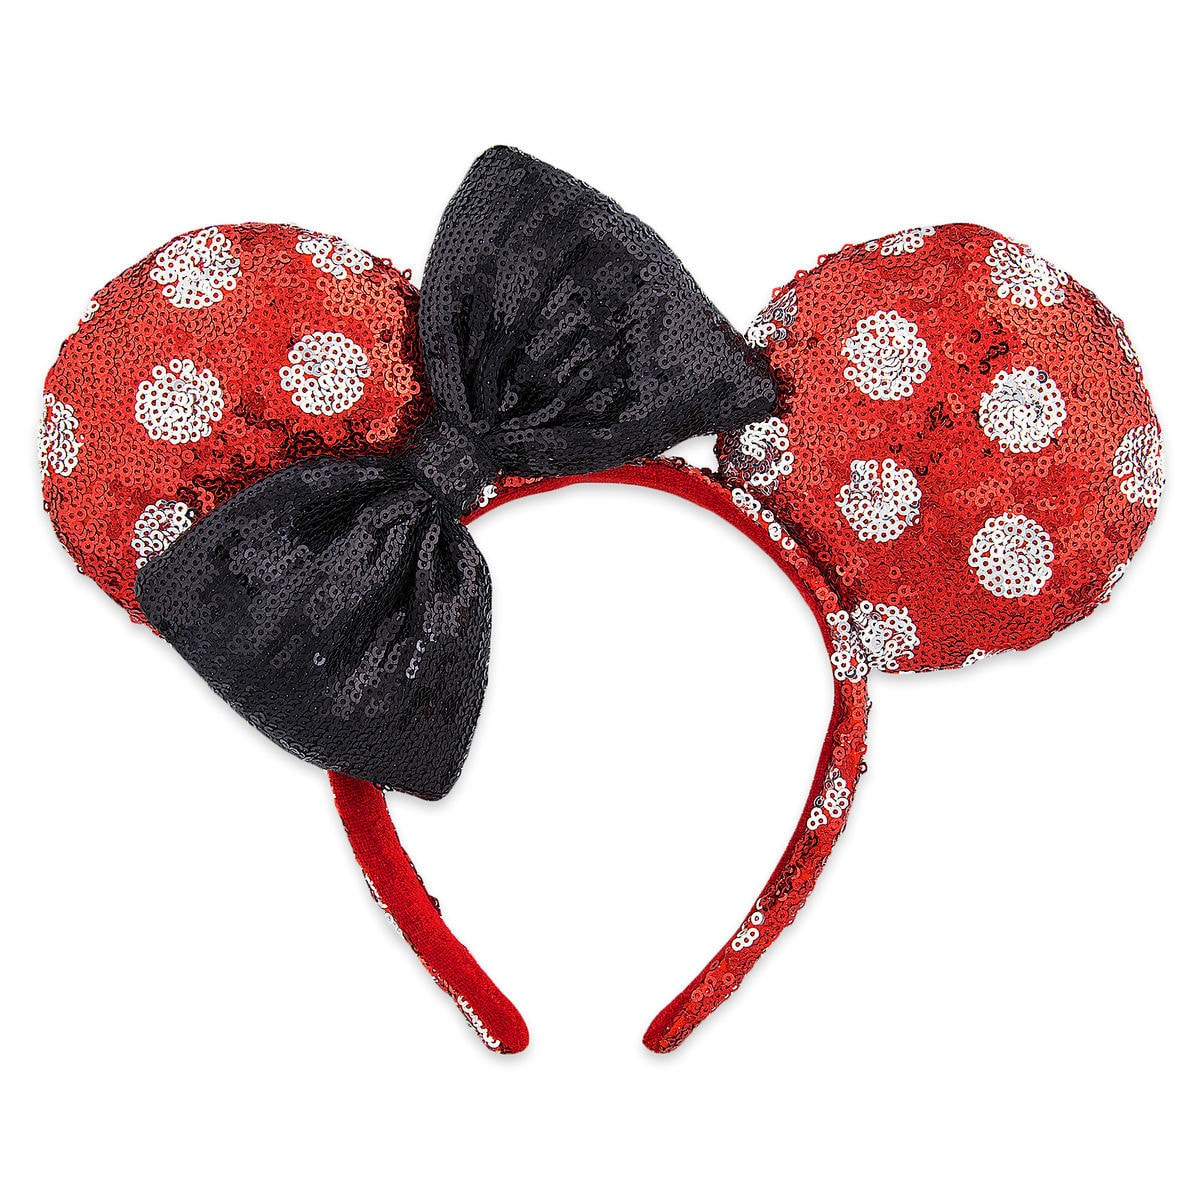 0cd9275f87e Product Image of Minnie Mouse Sequined Ears Headband for Adults - Polka Dot    1